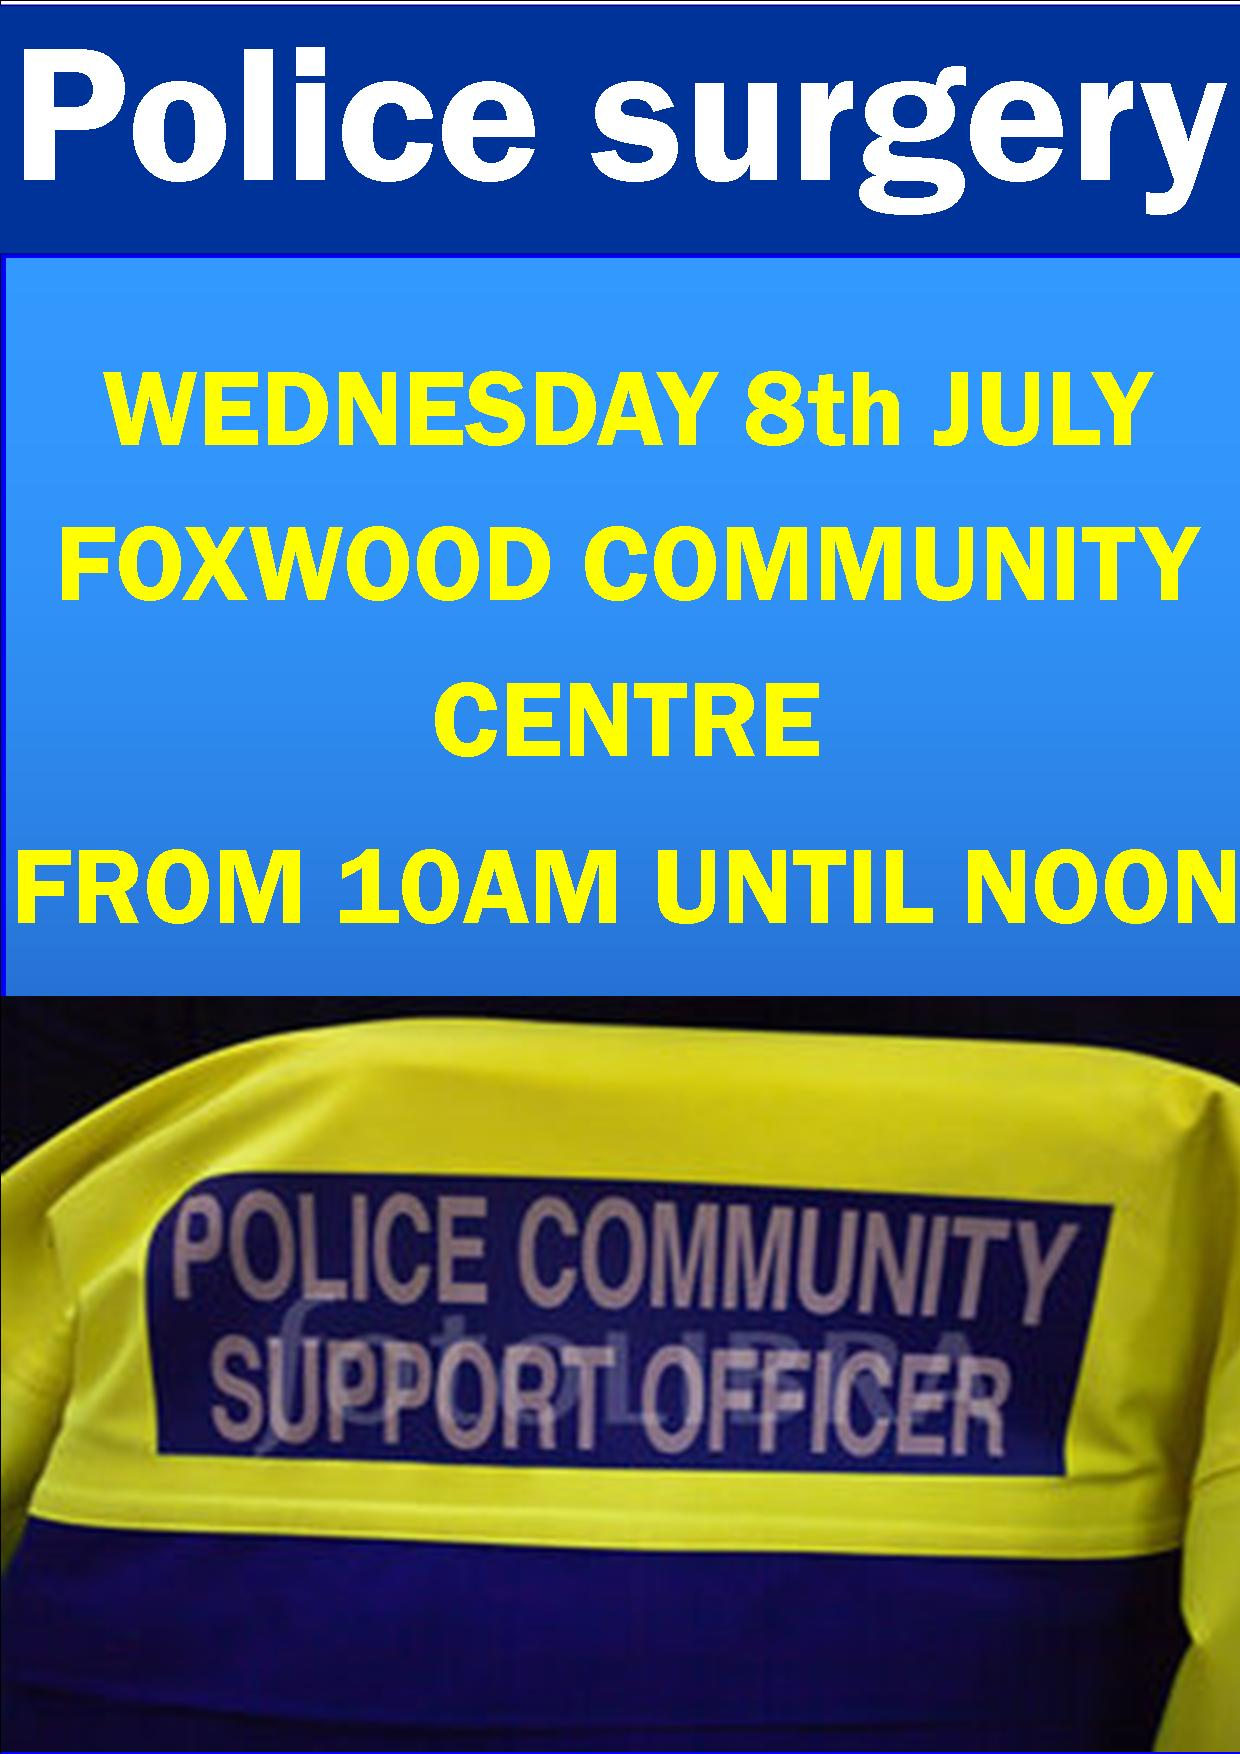 Police surgery 8th July